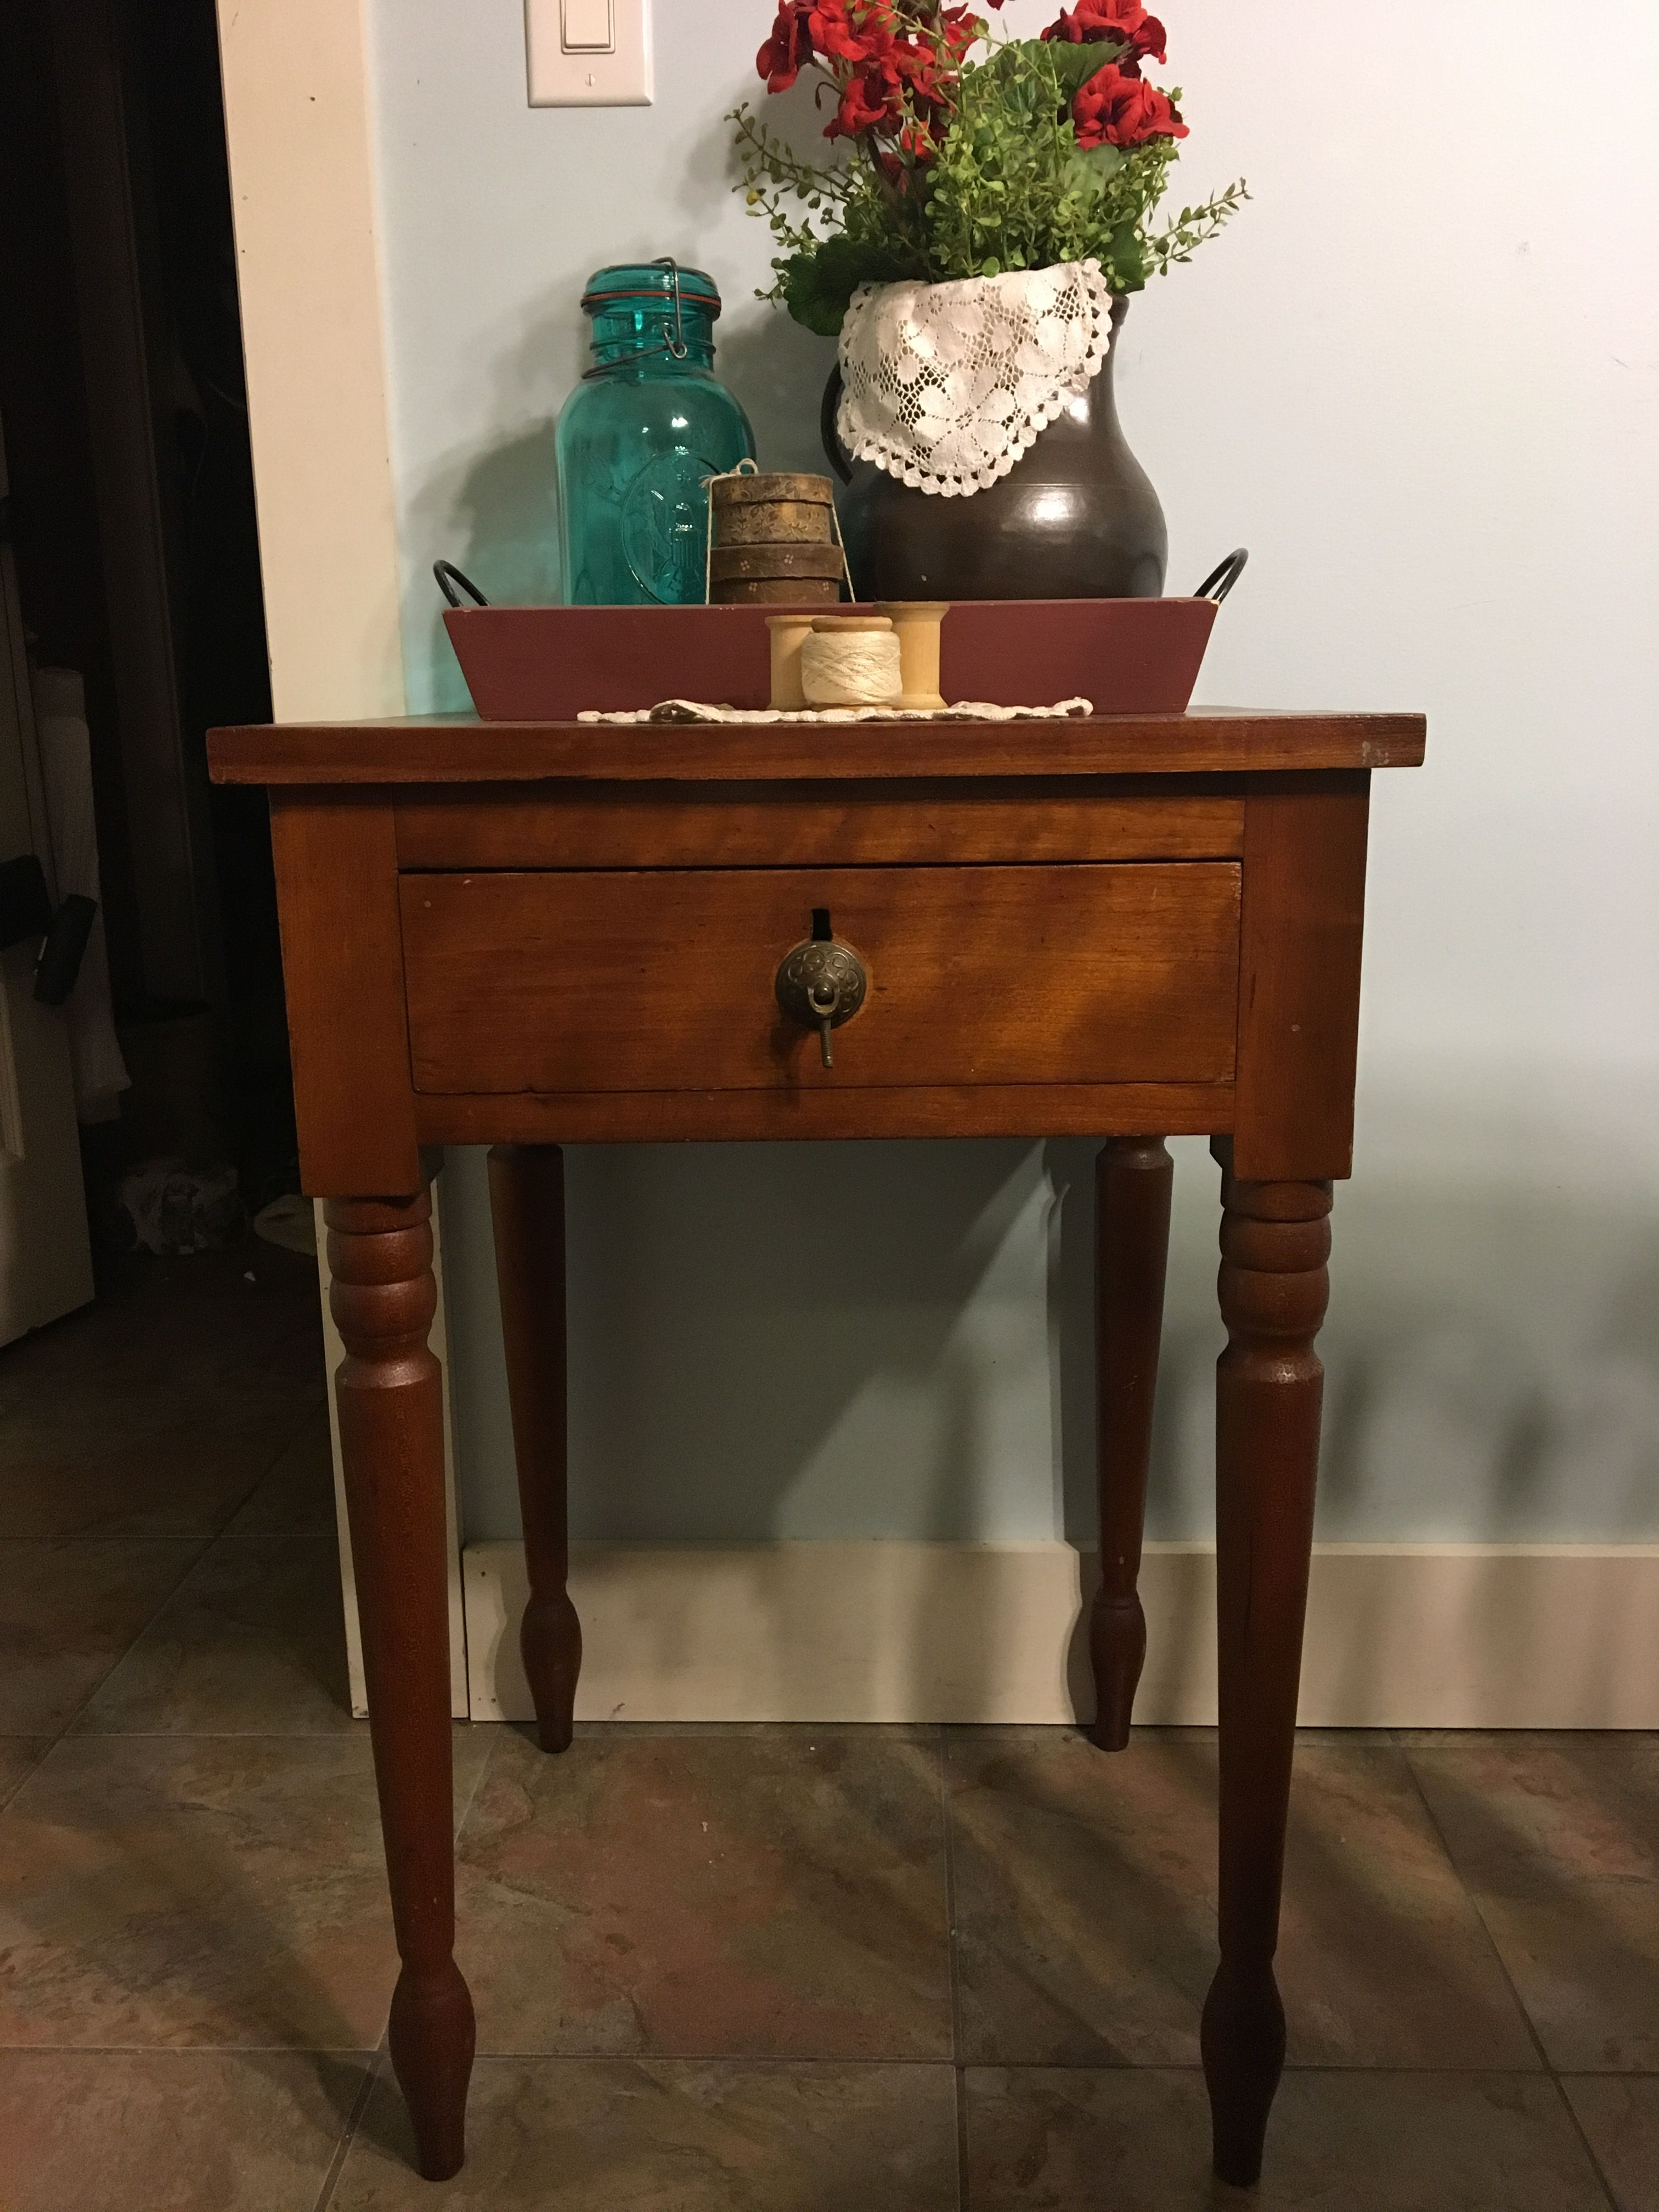 Beautiful farmhouse side table! For sale at Old Farmhouse